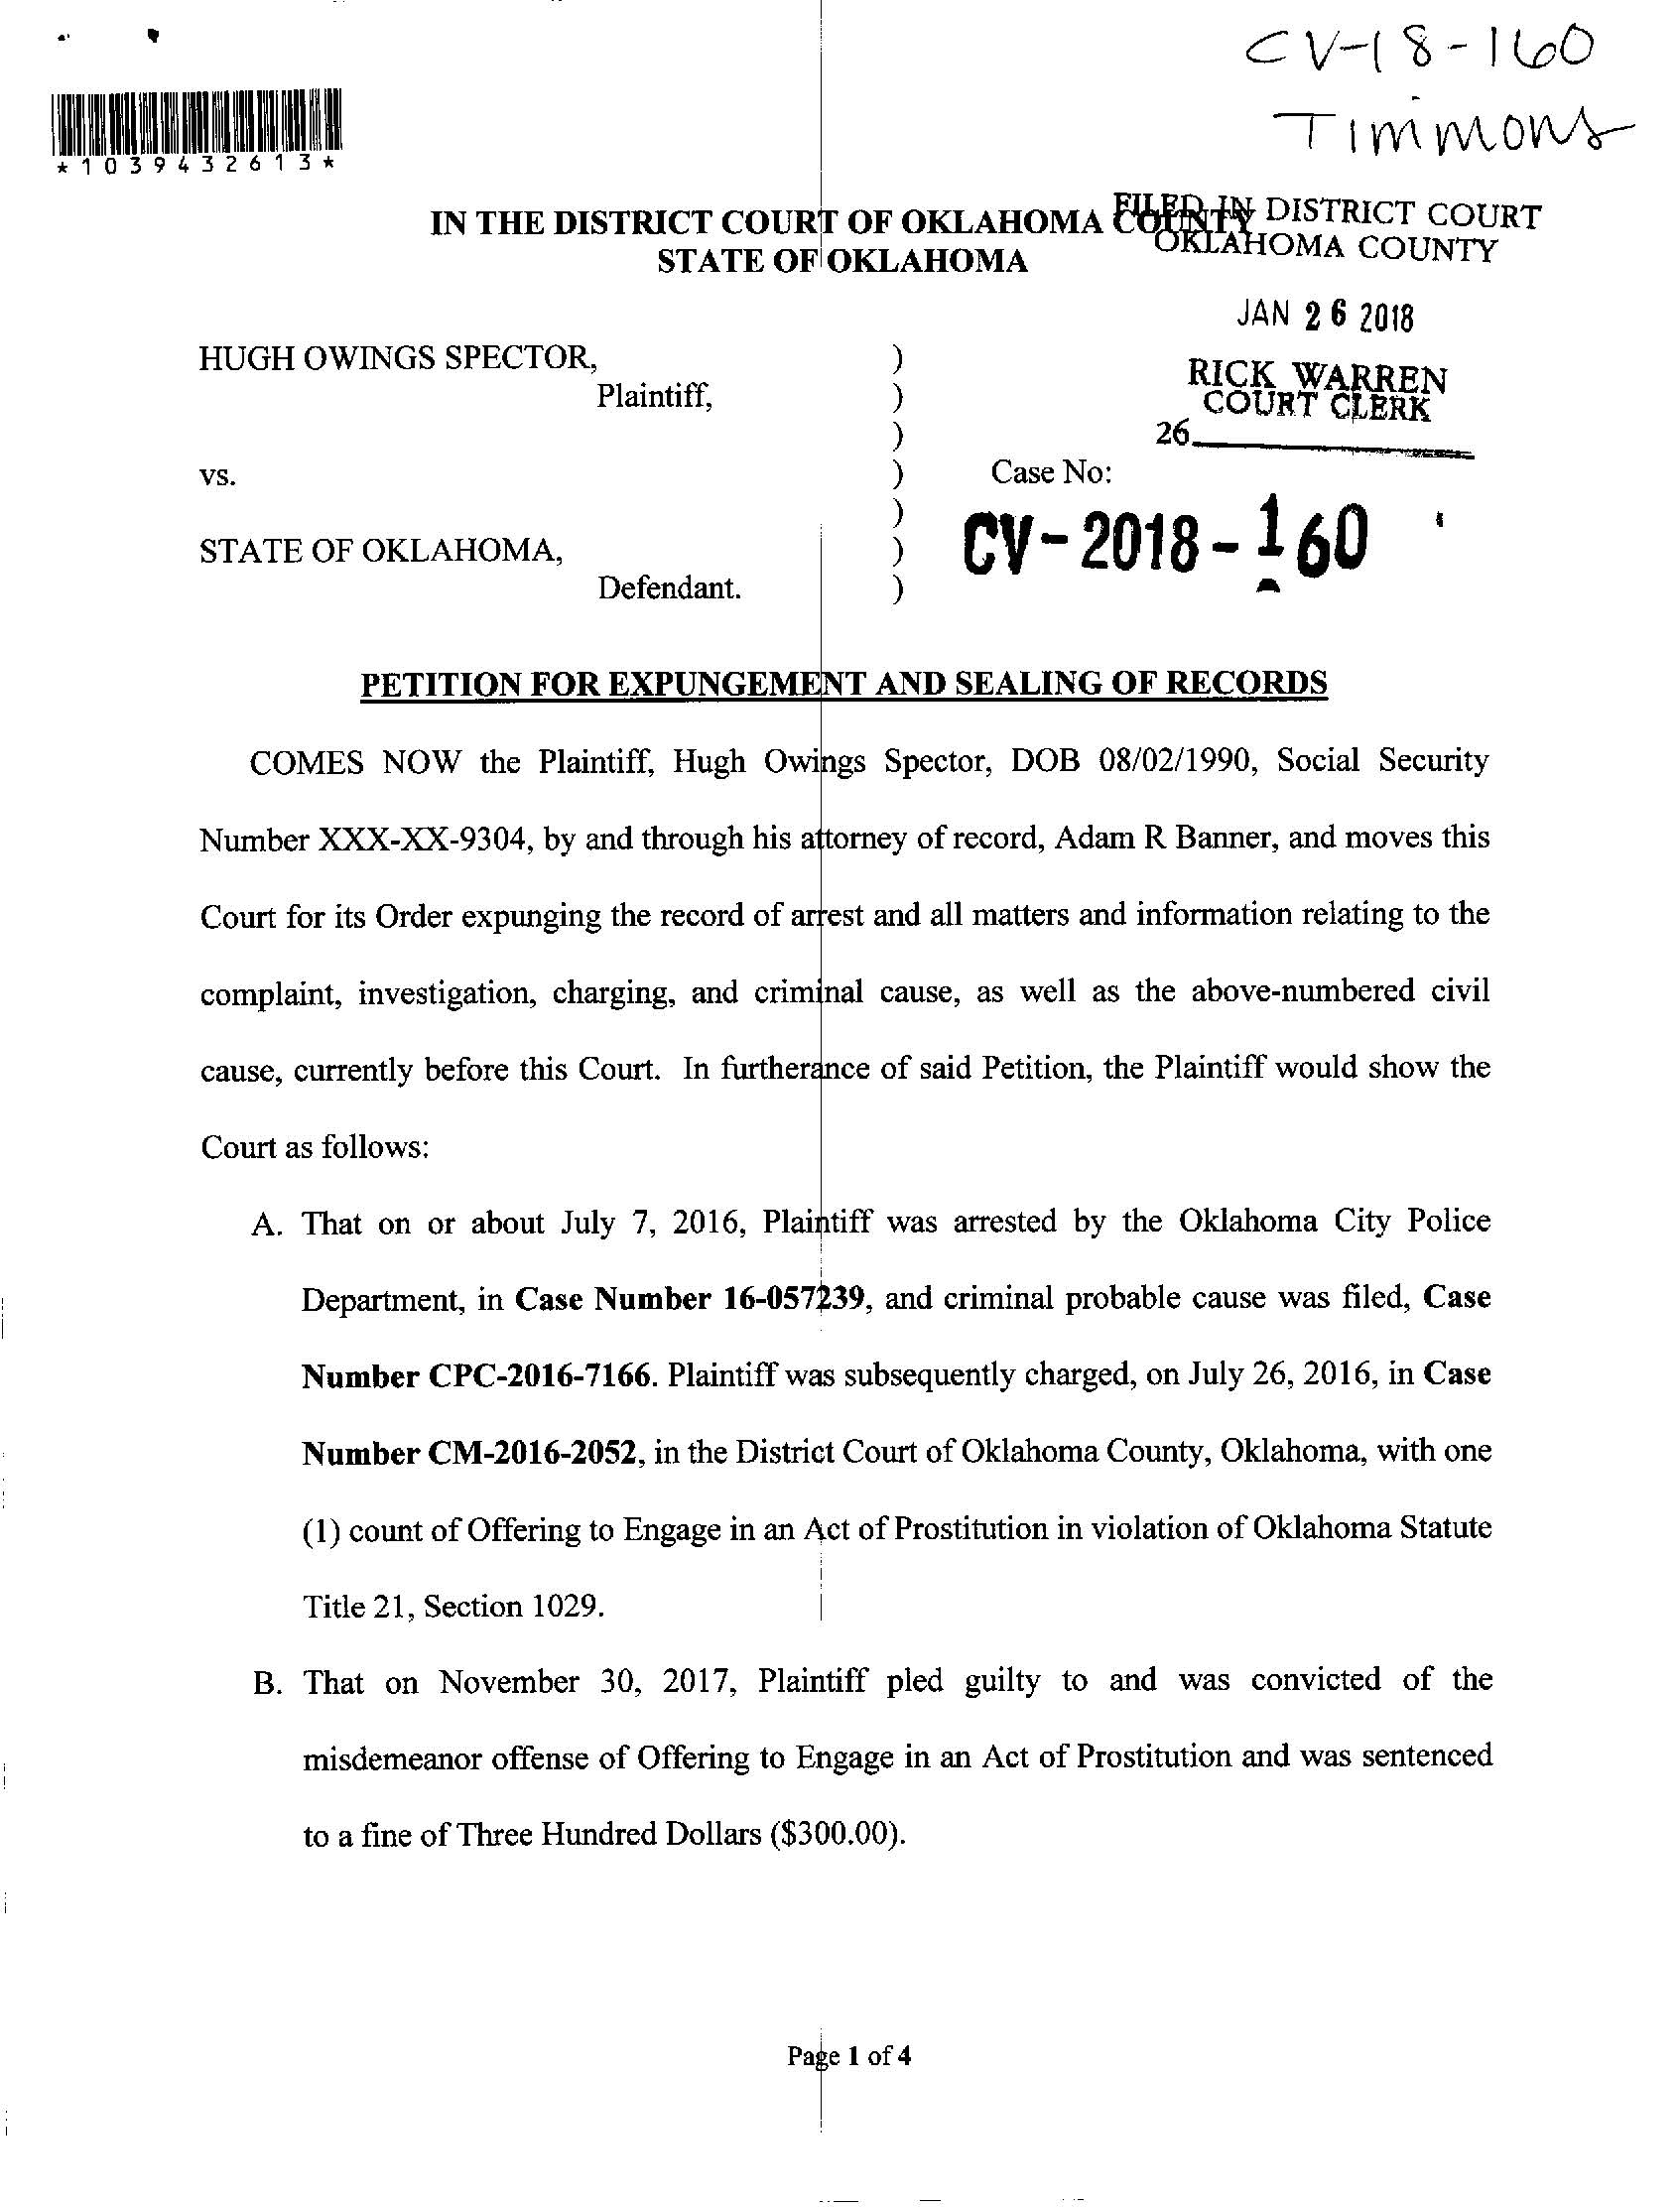 Hugh Spector Expungement Request_Page_1.jpg